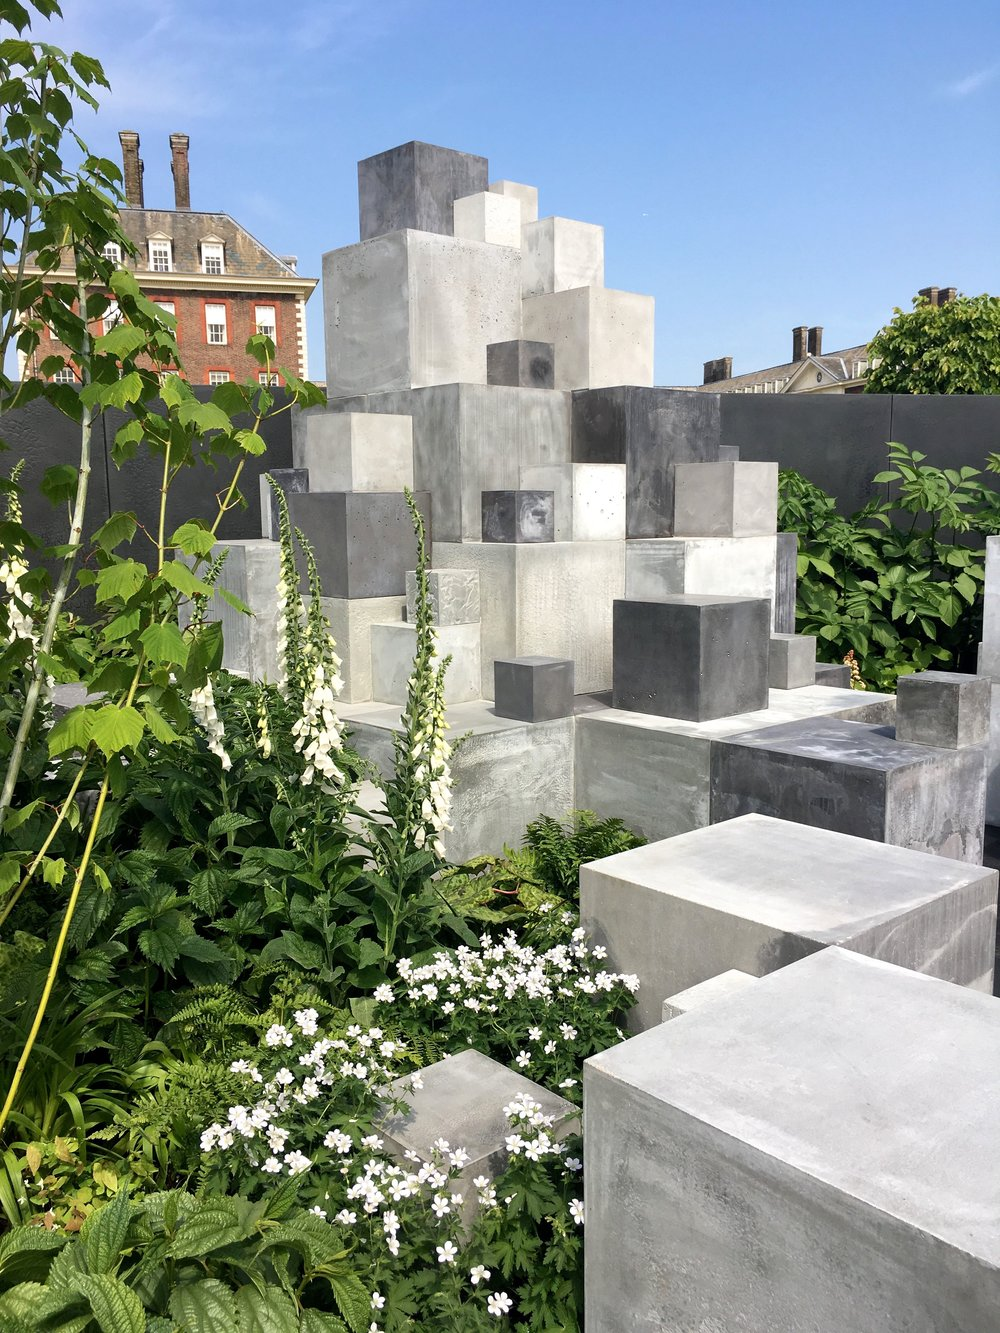 THE TEXTURAL BLOCKS IN THE SILVER-GILT MEDAL SPACE TO GROW SKIN DEEP GARDEN